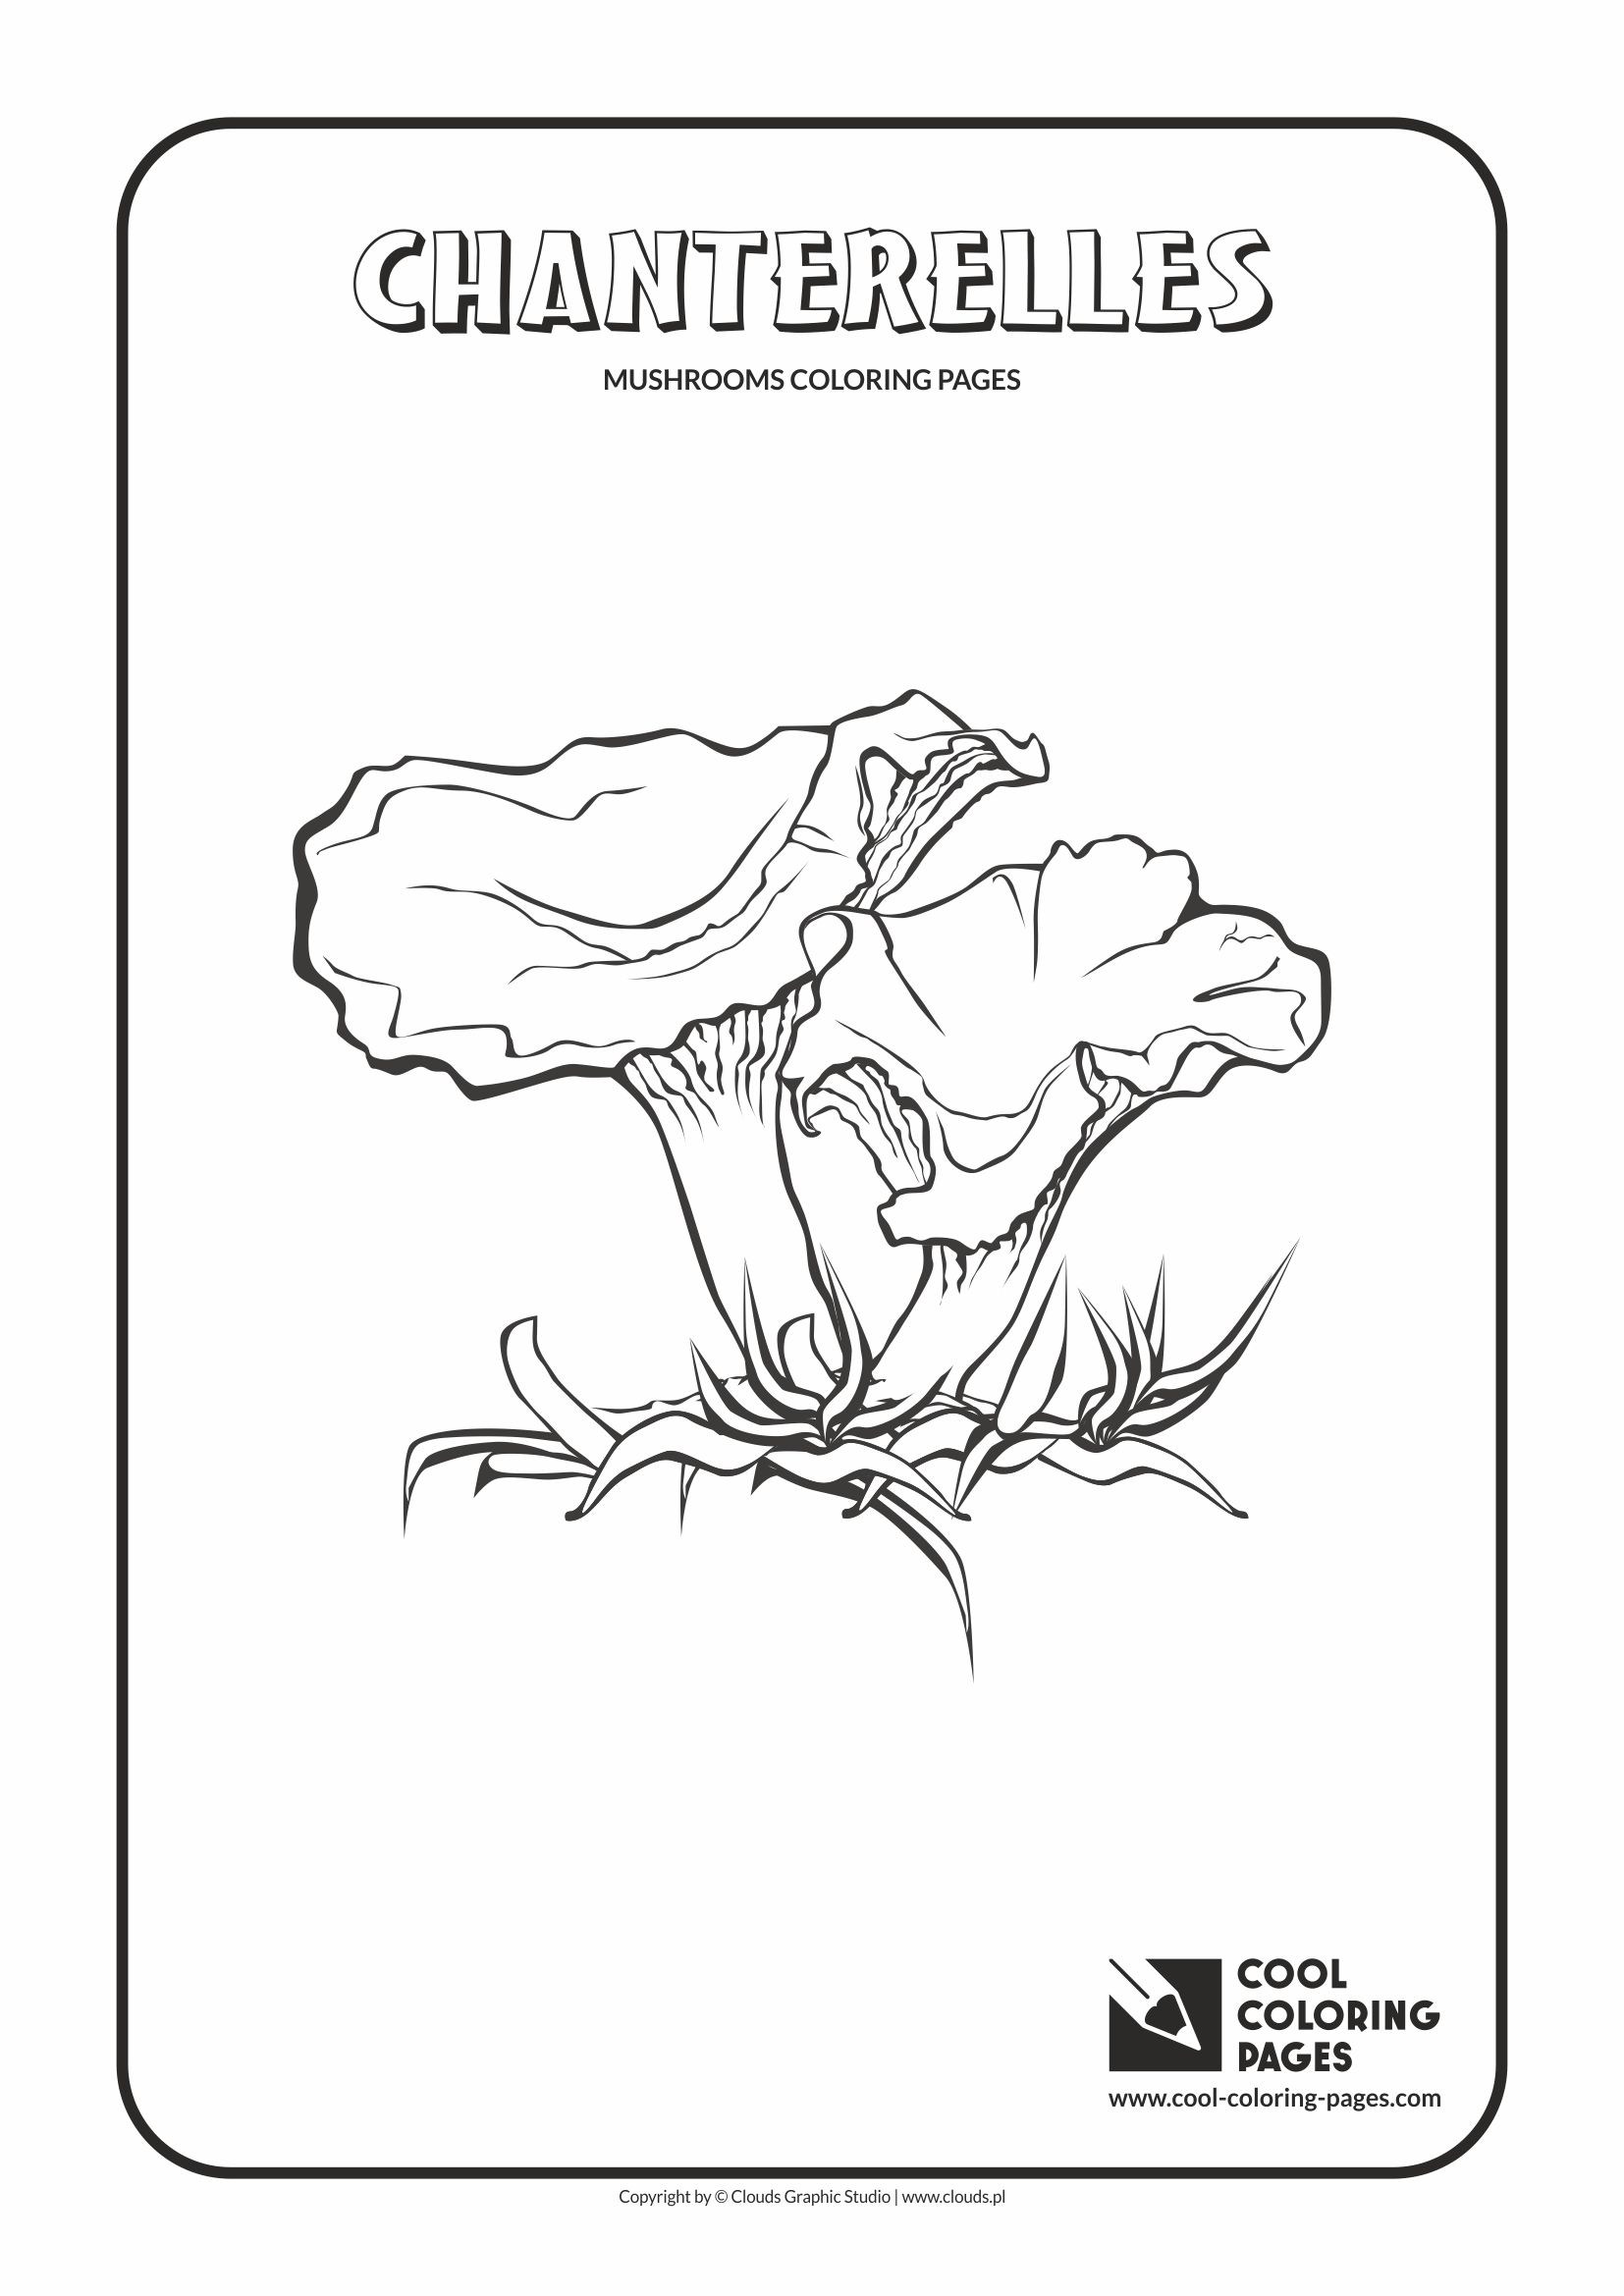 mushroom coloring pages - mushrooms coloring pages